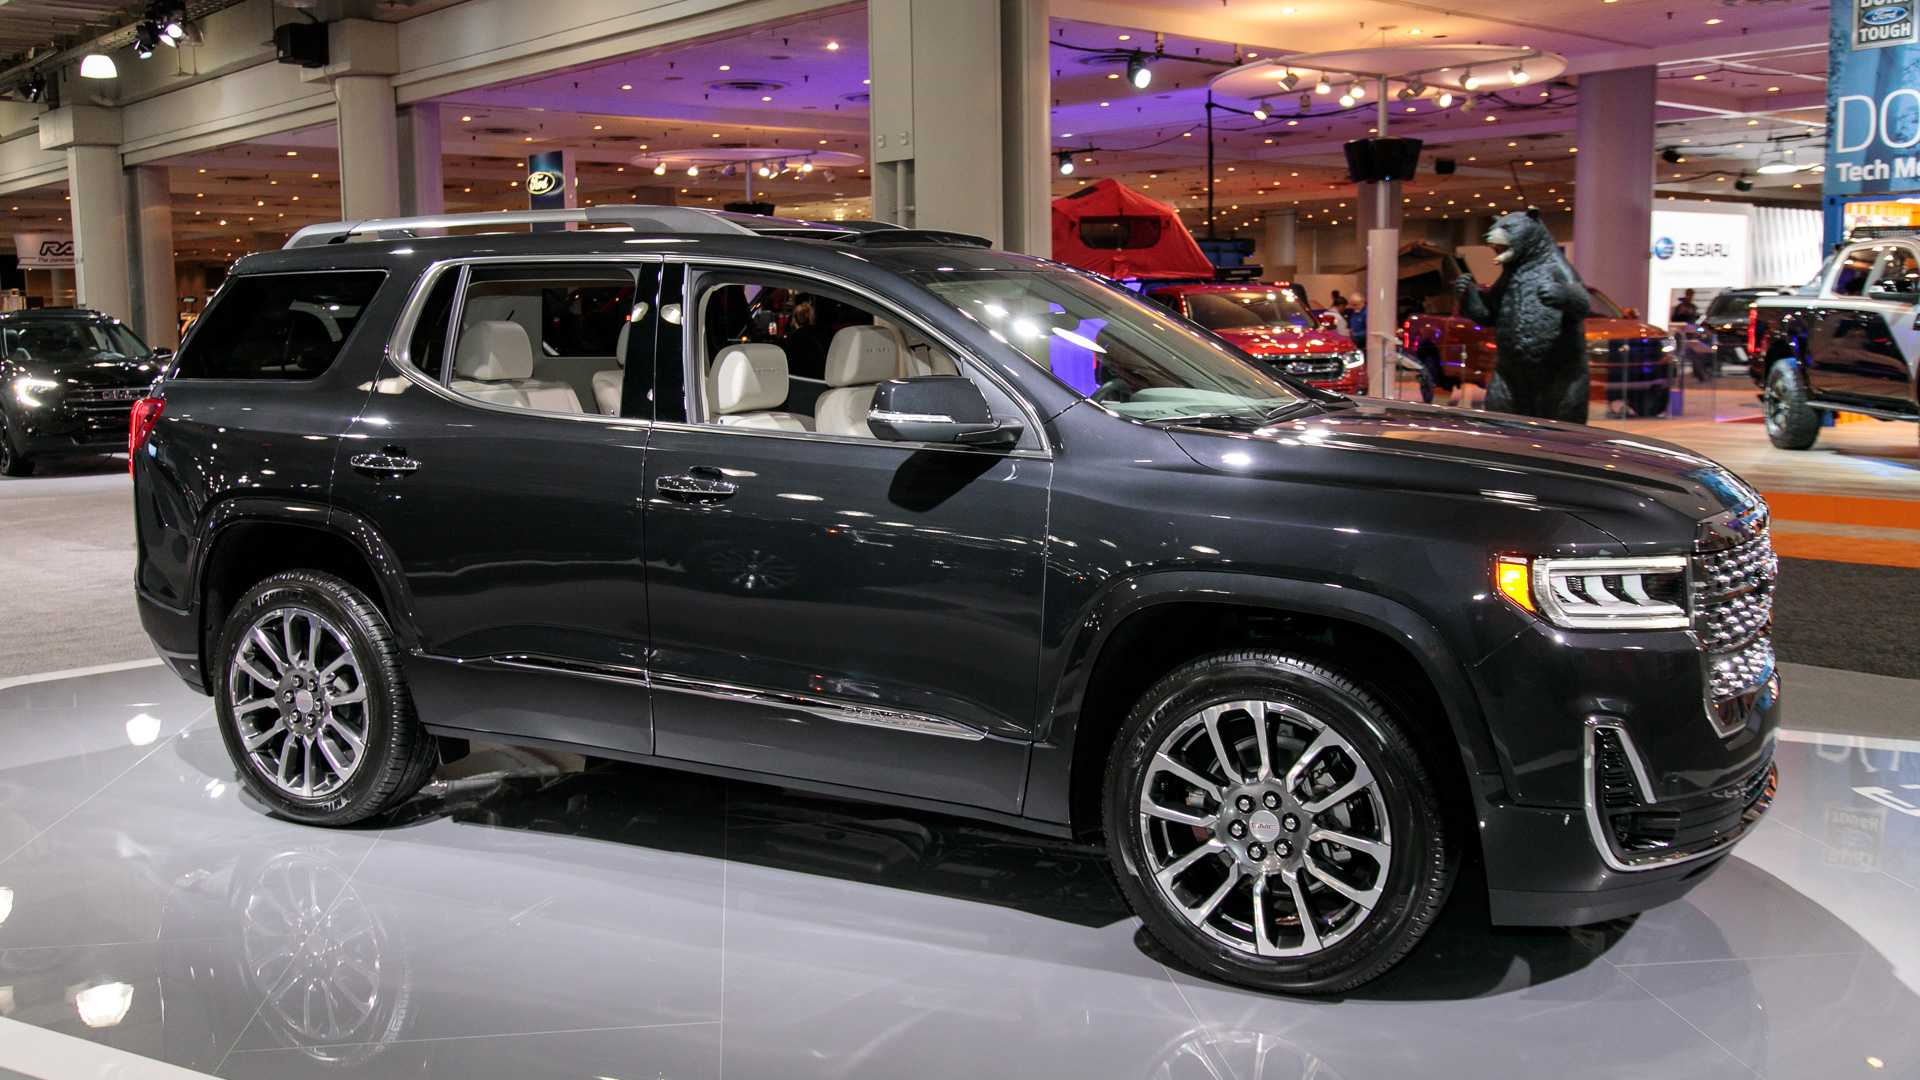 93 The Best 2020 GMC Acadia Mpg Concept